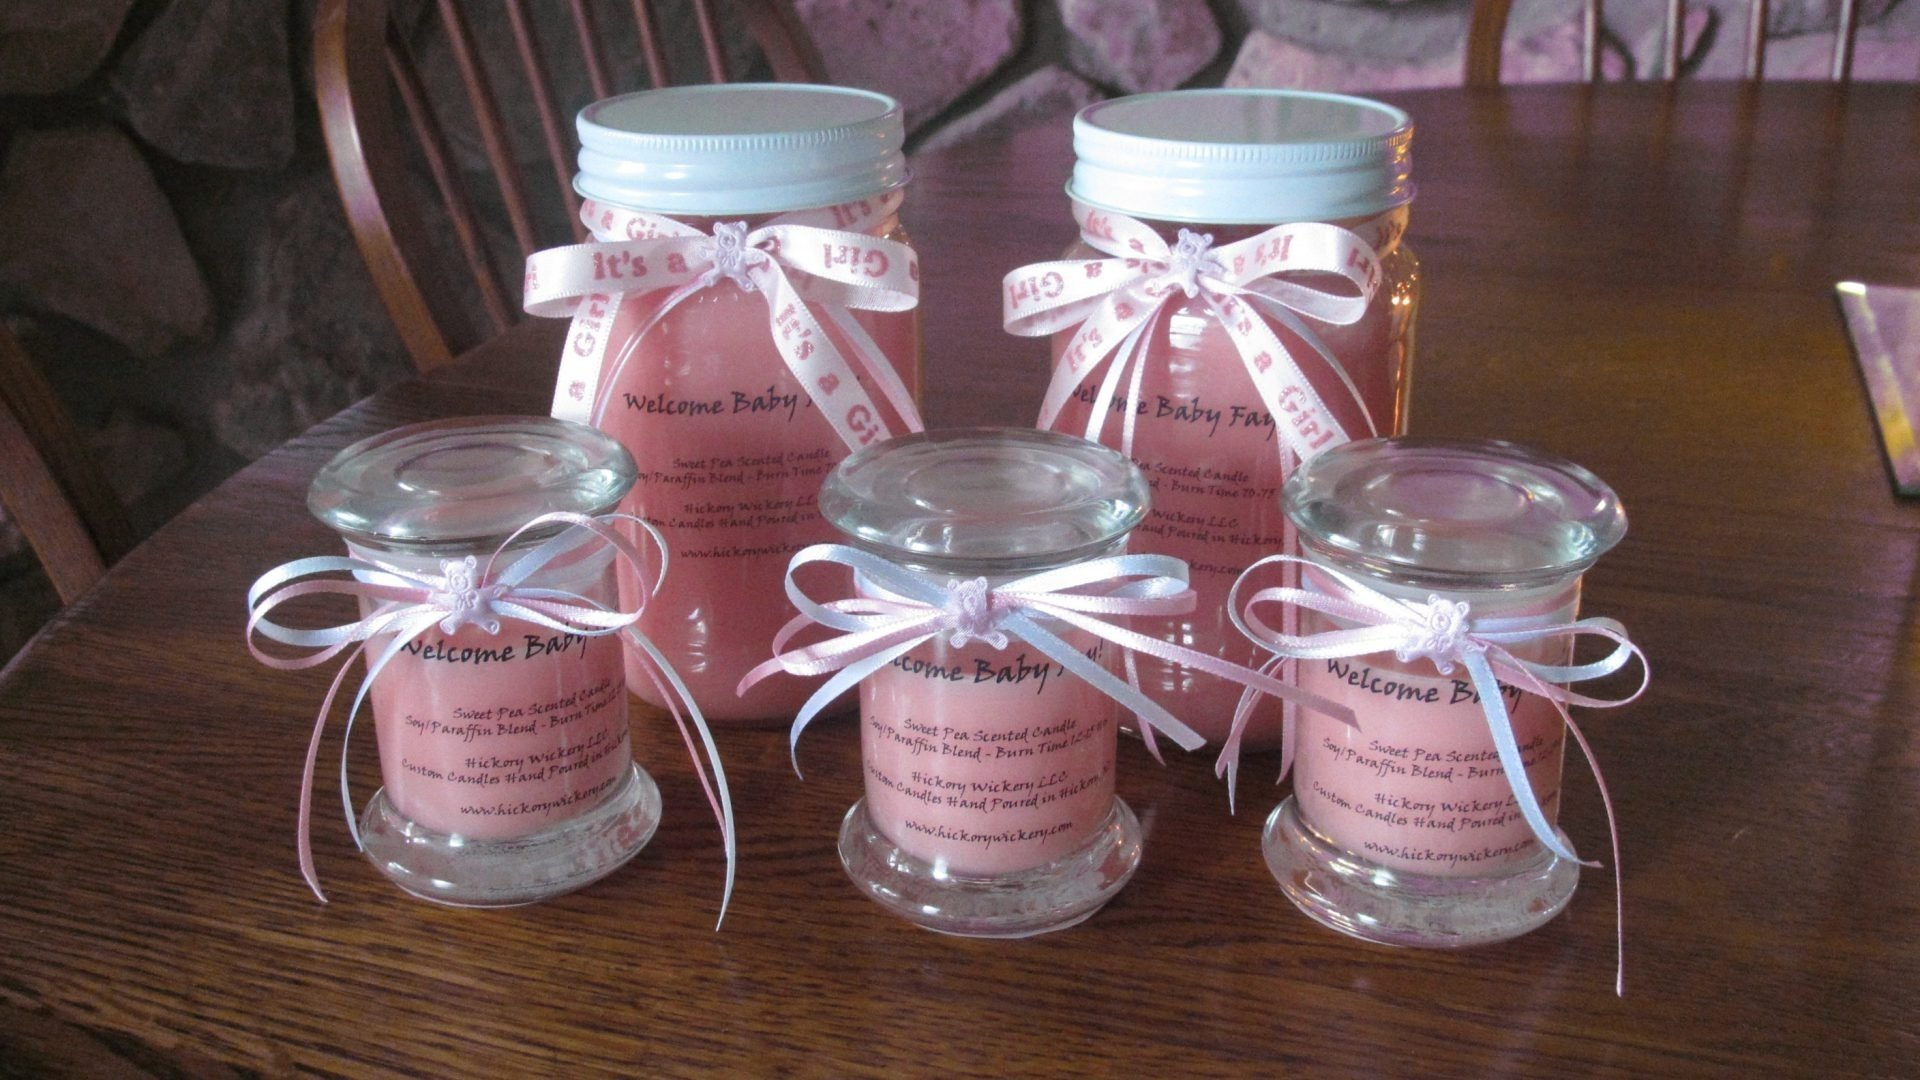 10 Attractive Baby Shower Favor Ideas To Make Yourself baby shower favor ideas toake yourself phenomenal shapelyfavors 2021